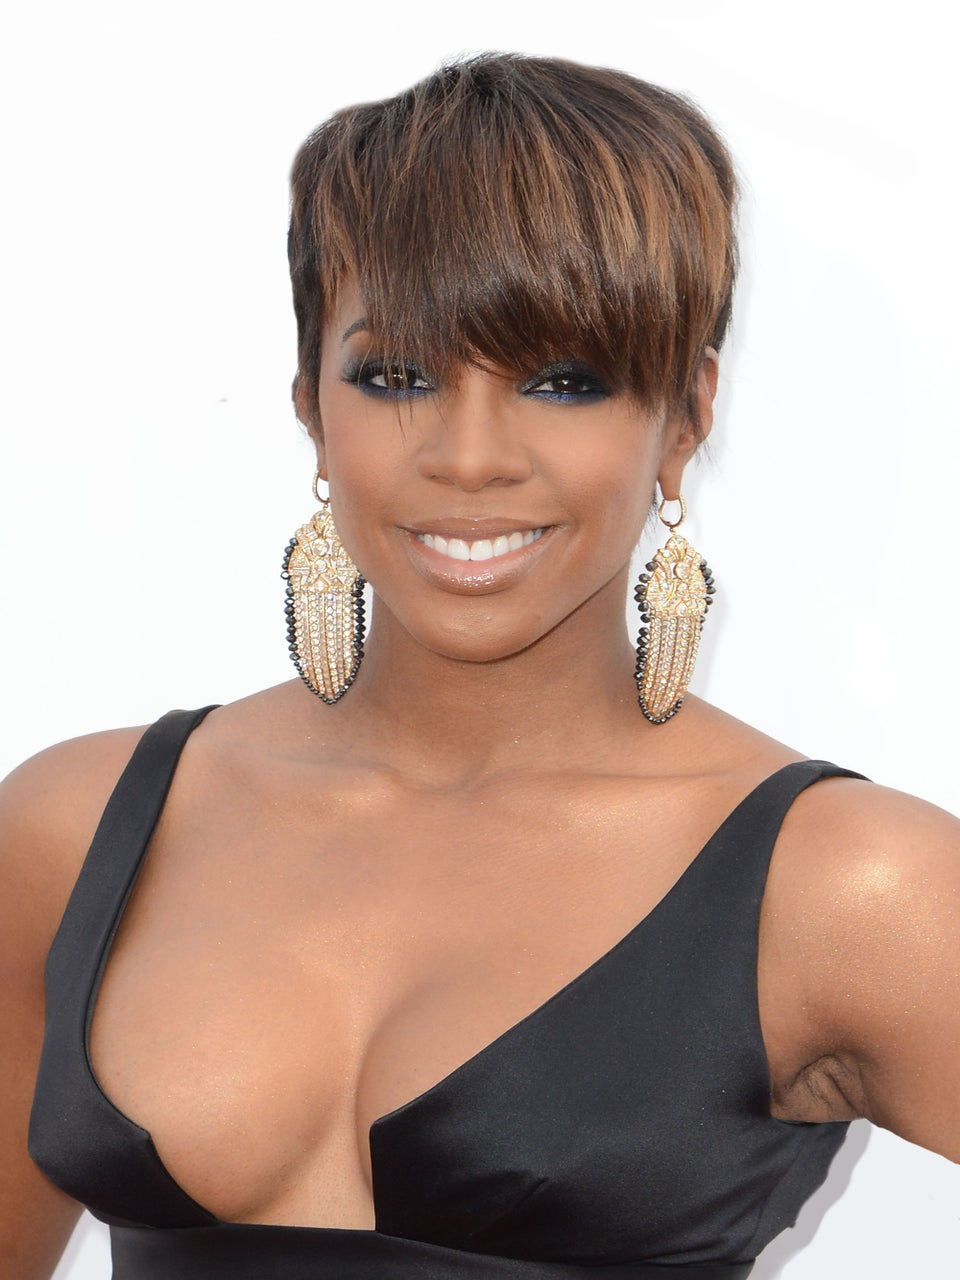 Goodbye Bob! Kelly Rowland Debuts Edgy Haircut at Billboard Music Awards